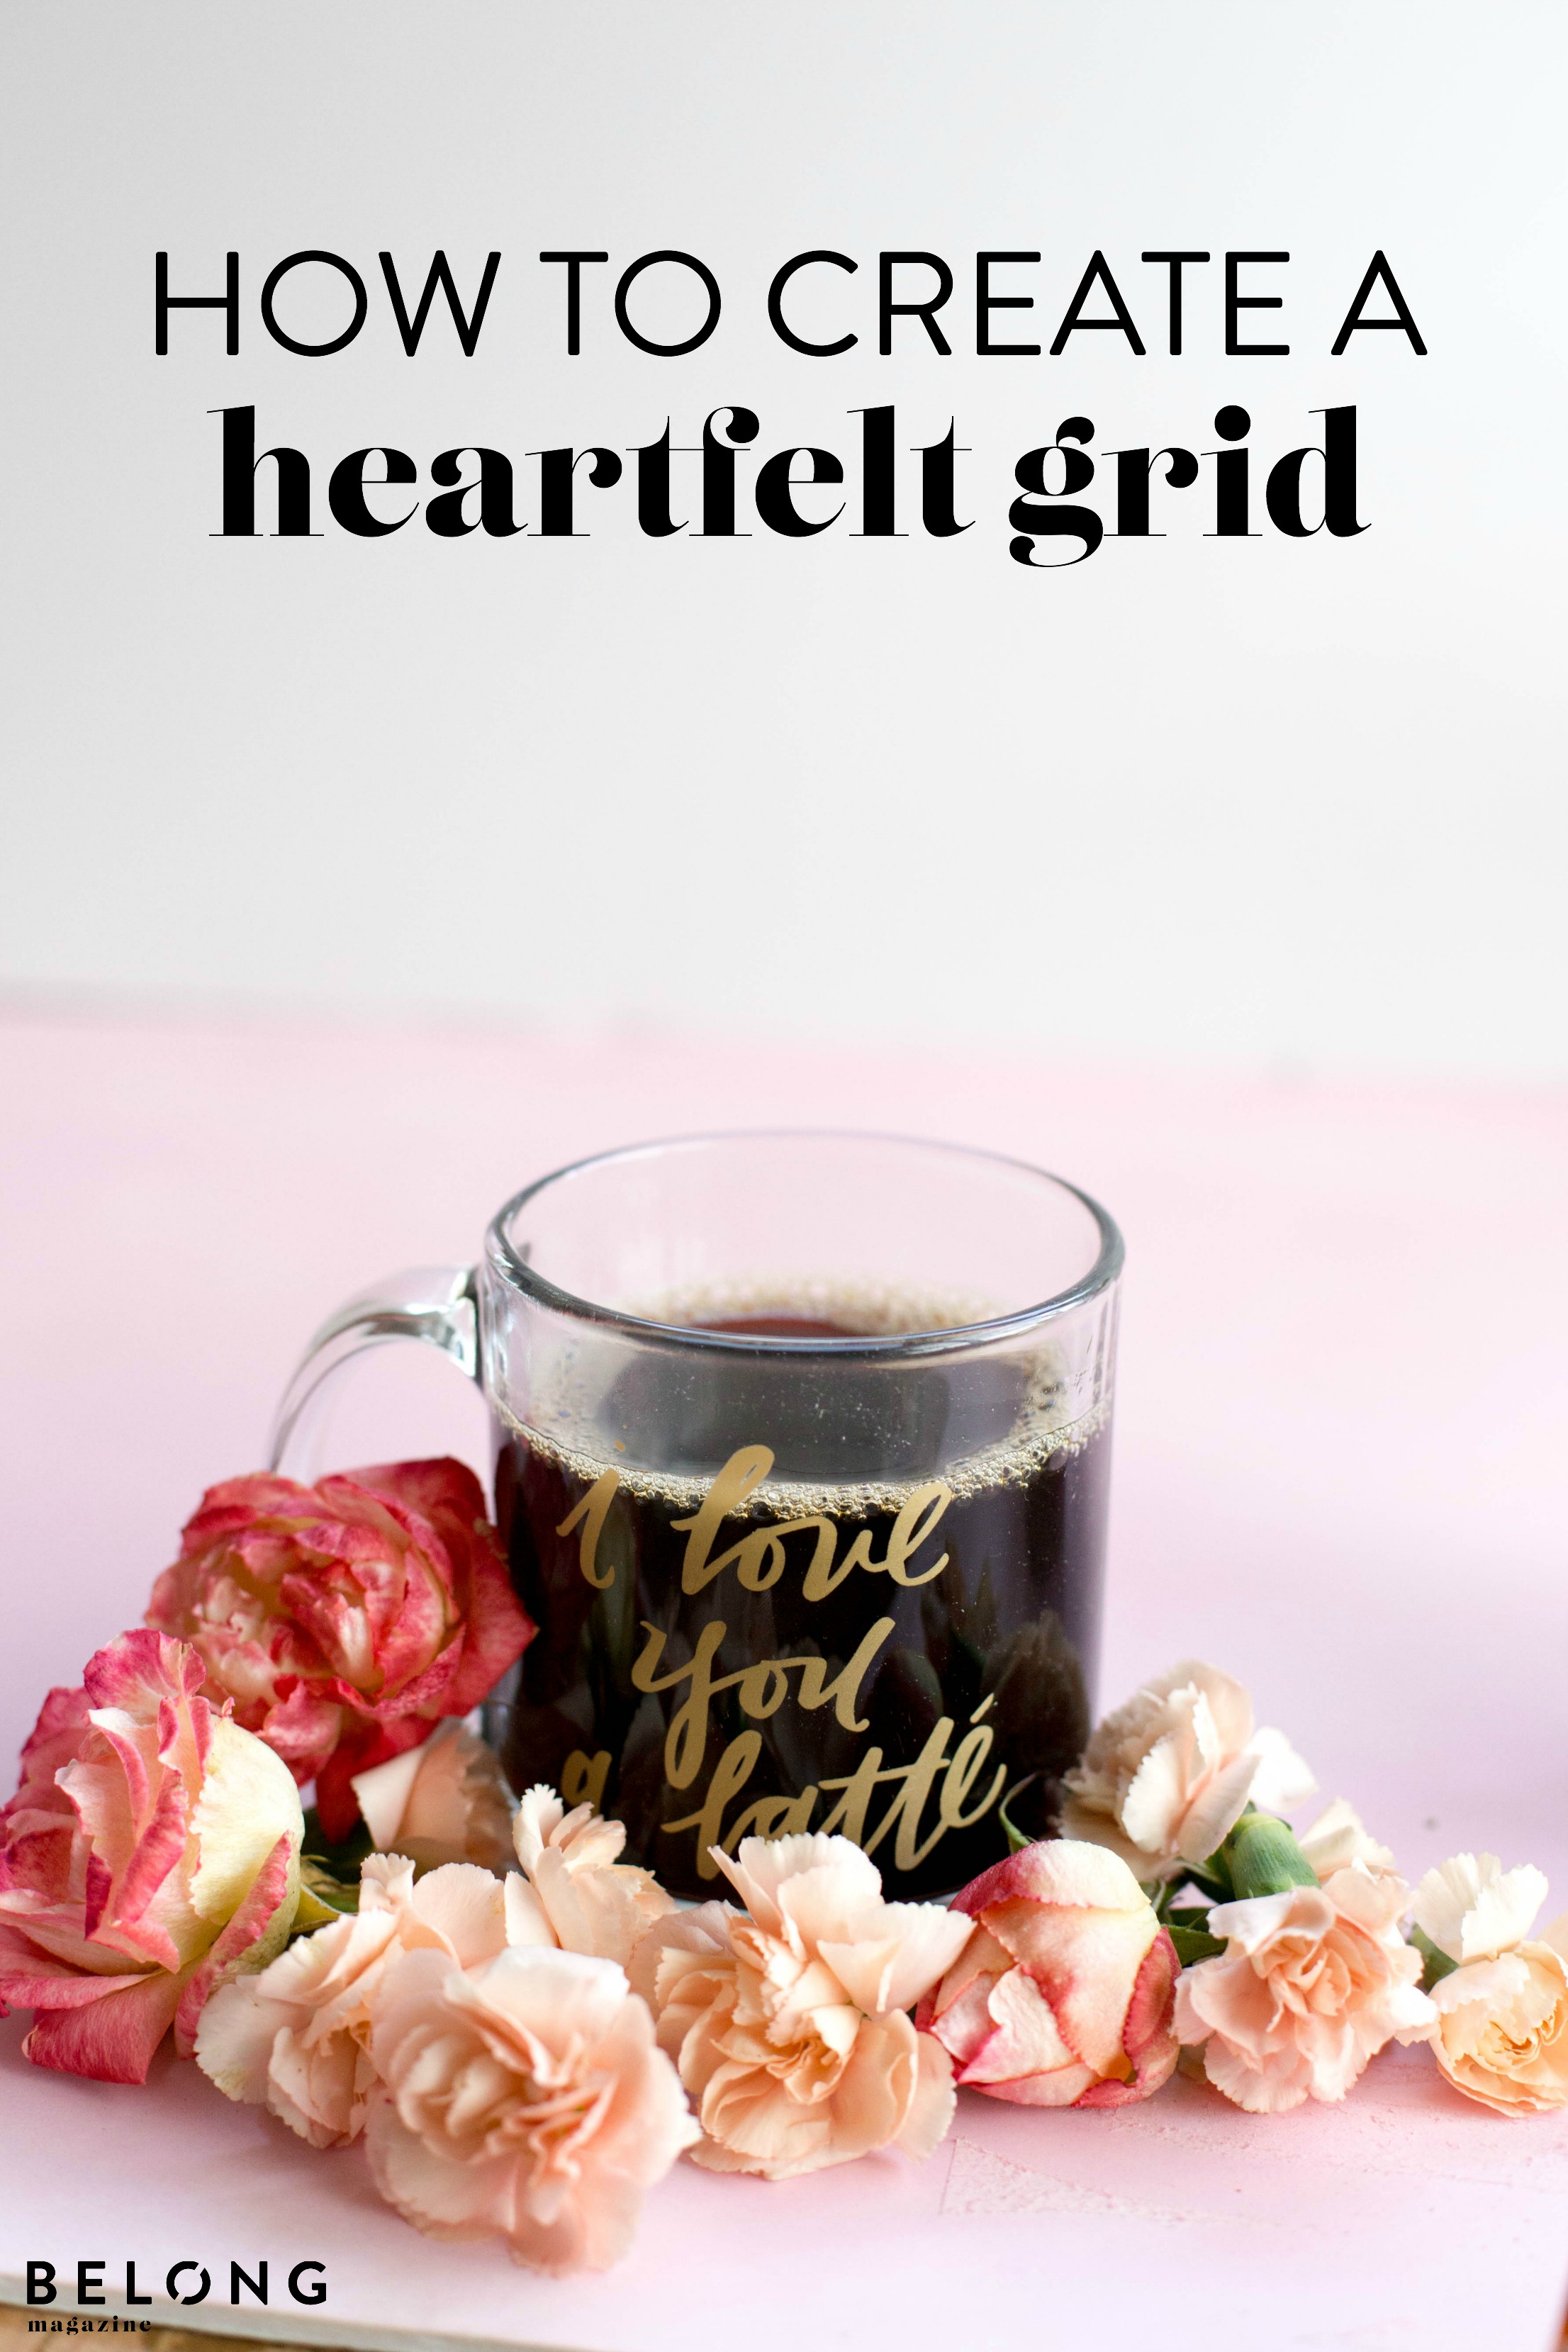 the heartfelt grid by Rachel Allene Heckmann as featured in Belong Magazine ISSUE 09 - for female creatives and entrepreneurs